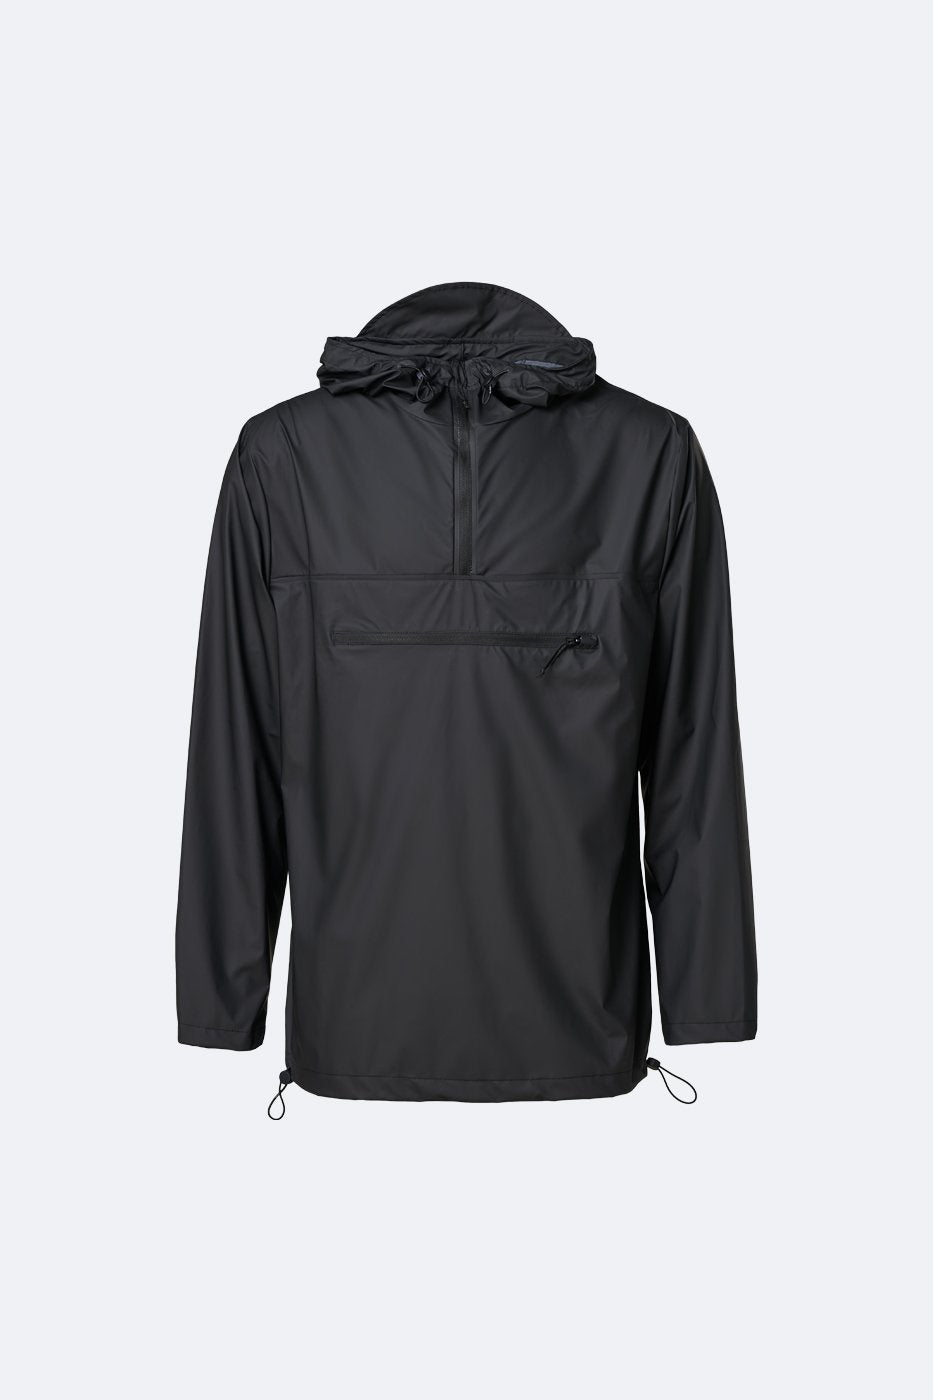 Rains - Ultralight Zip Anorak - Black